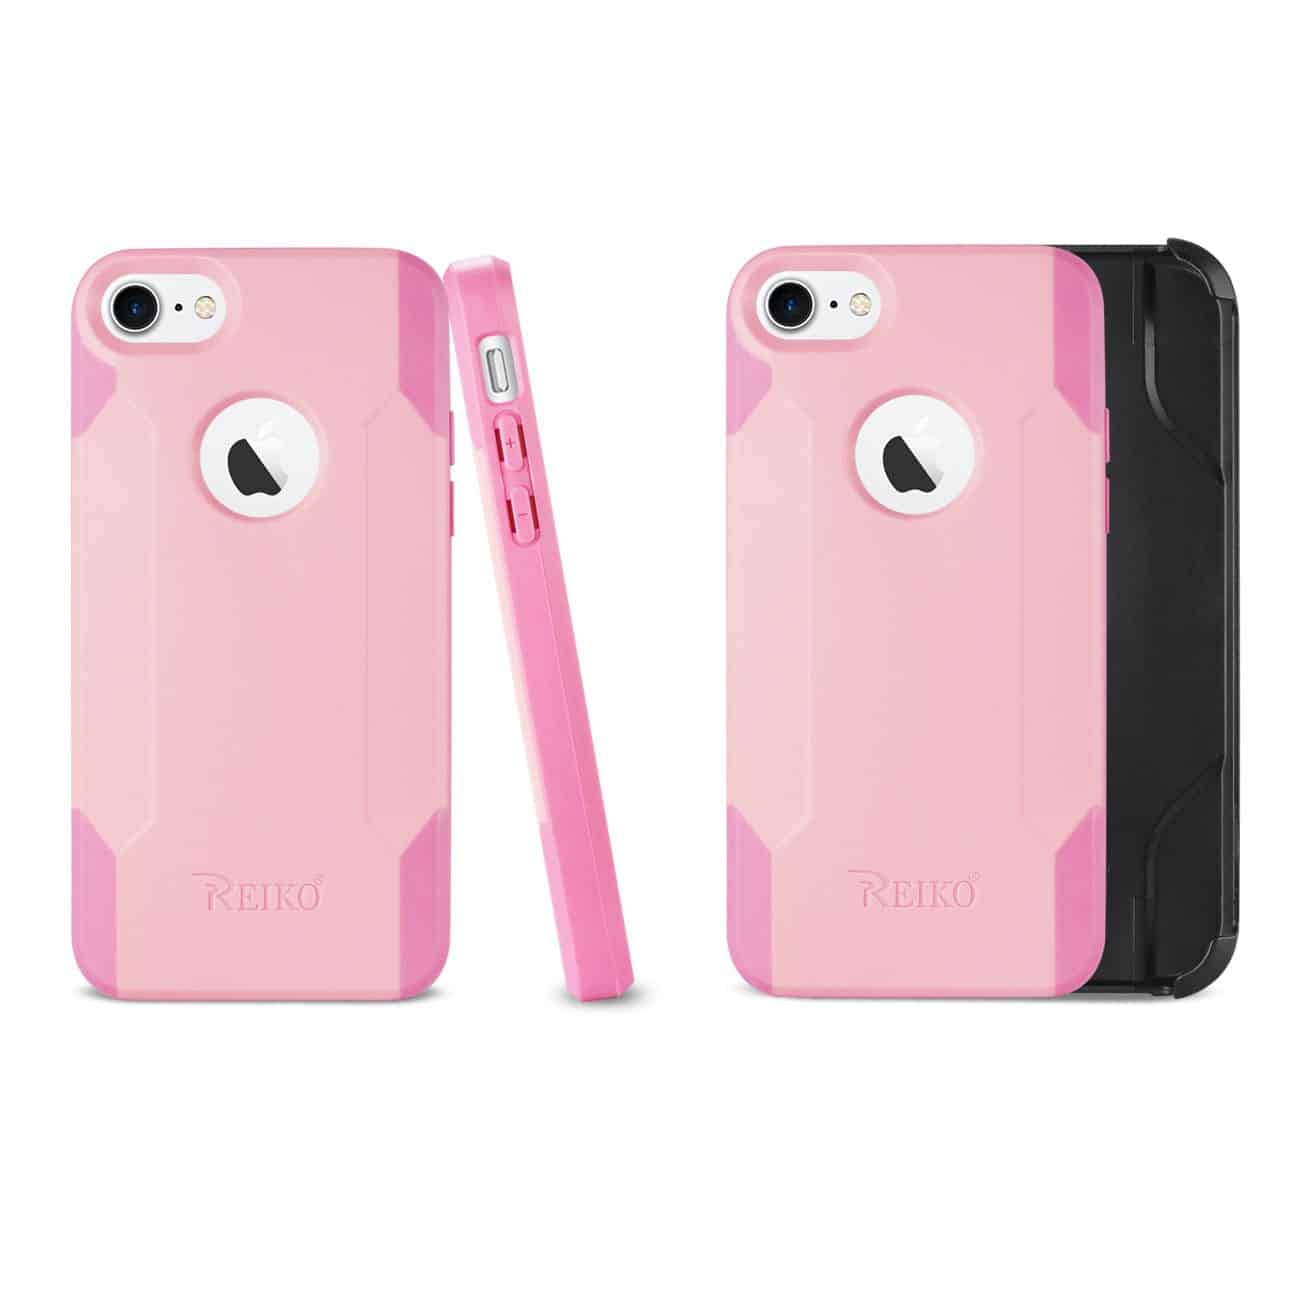 IPHONE 8 3-IN-1 HYBRID HEAVY DUTY HOLSTER COMBO CASE IN LIGHT PINK